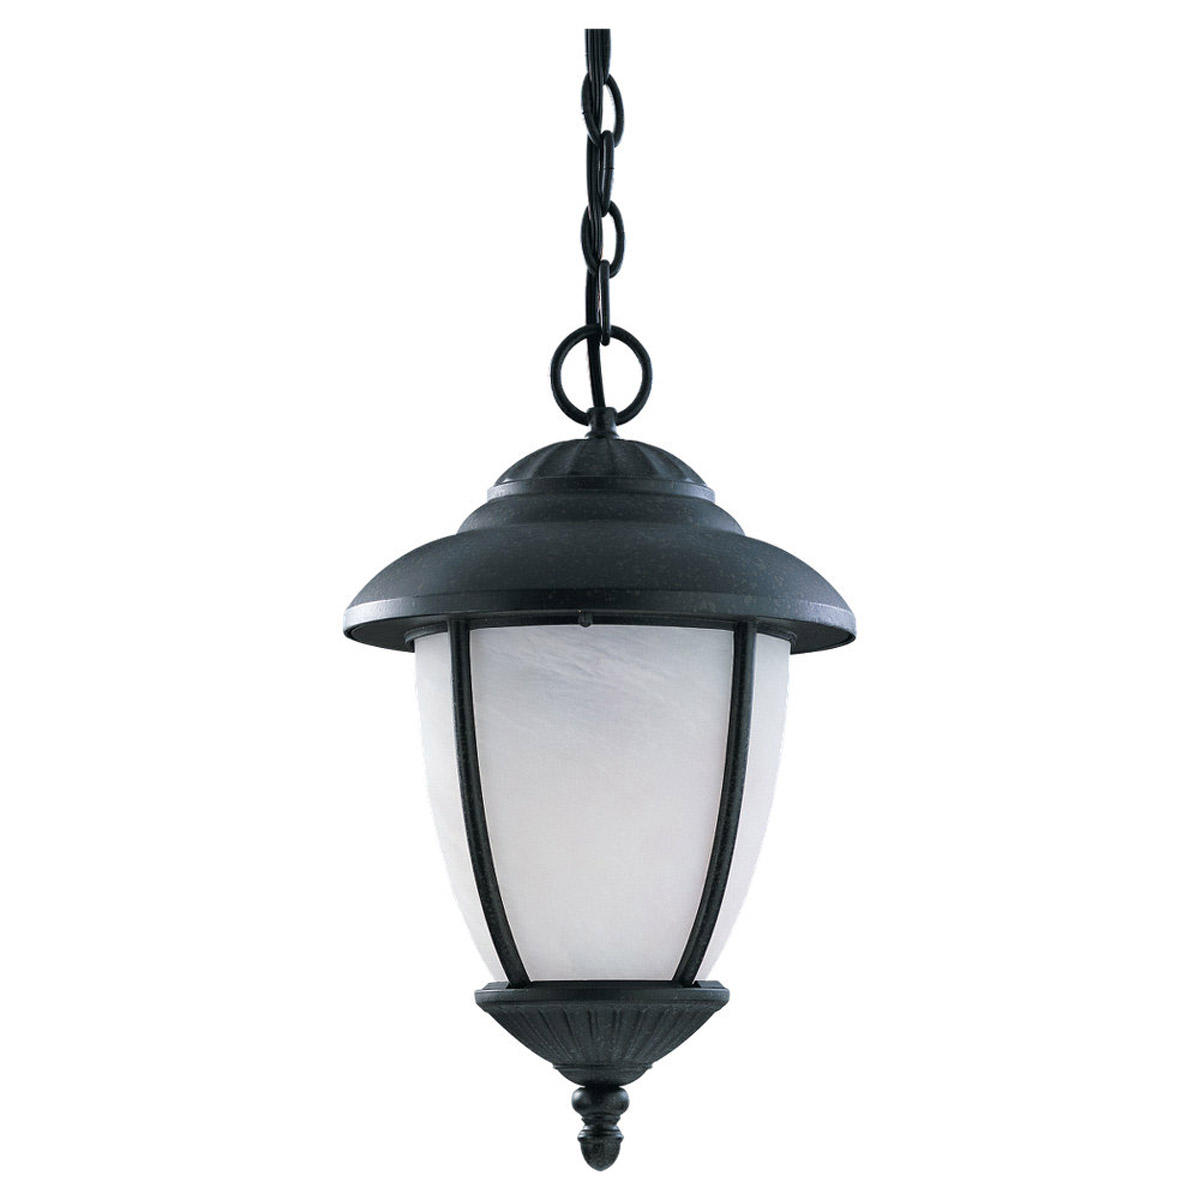 Sea Gull Lighting Yorktown 1 Light Outdoor Pendant in Black 69248PBLE-12